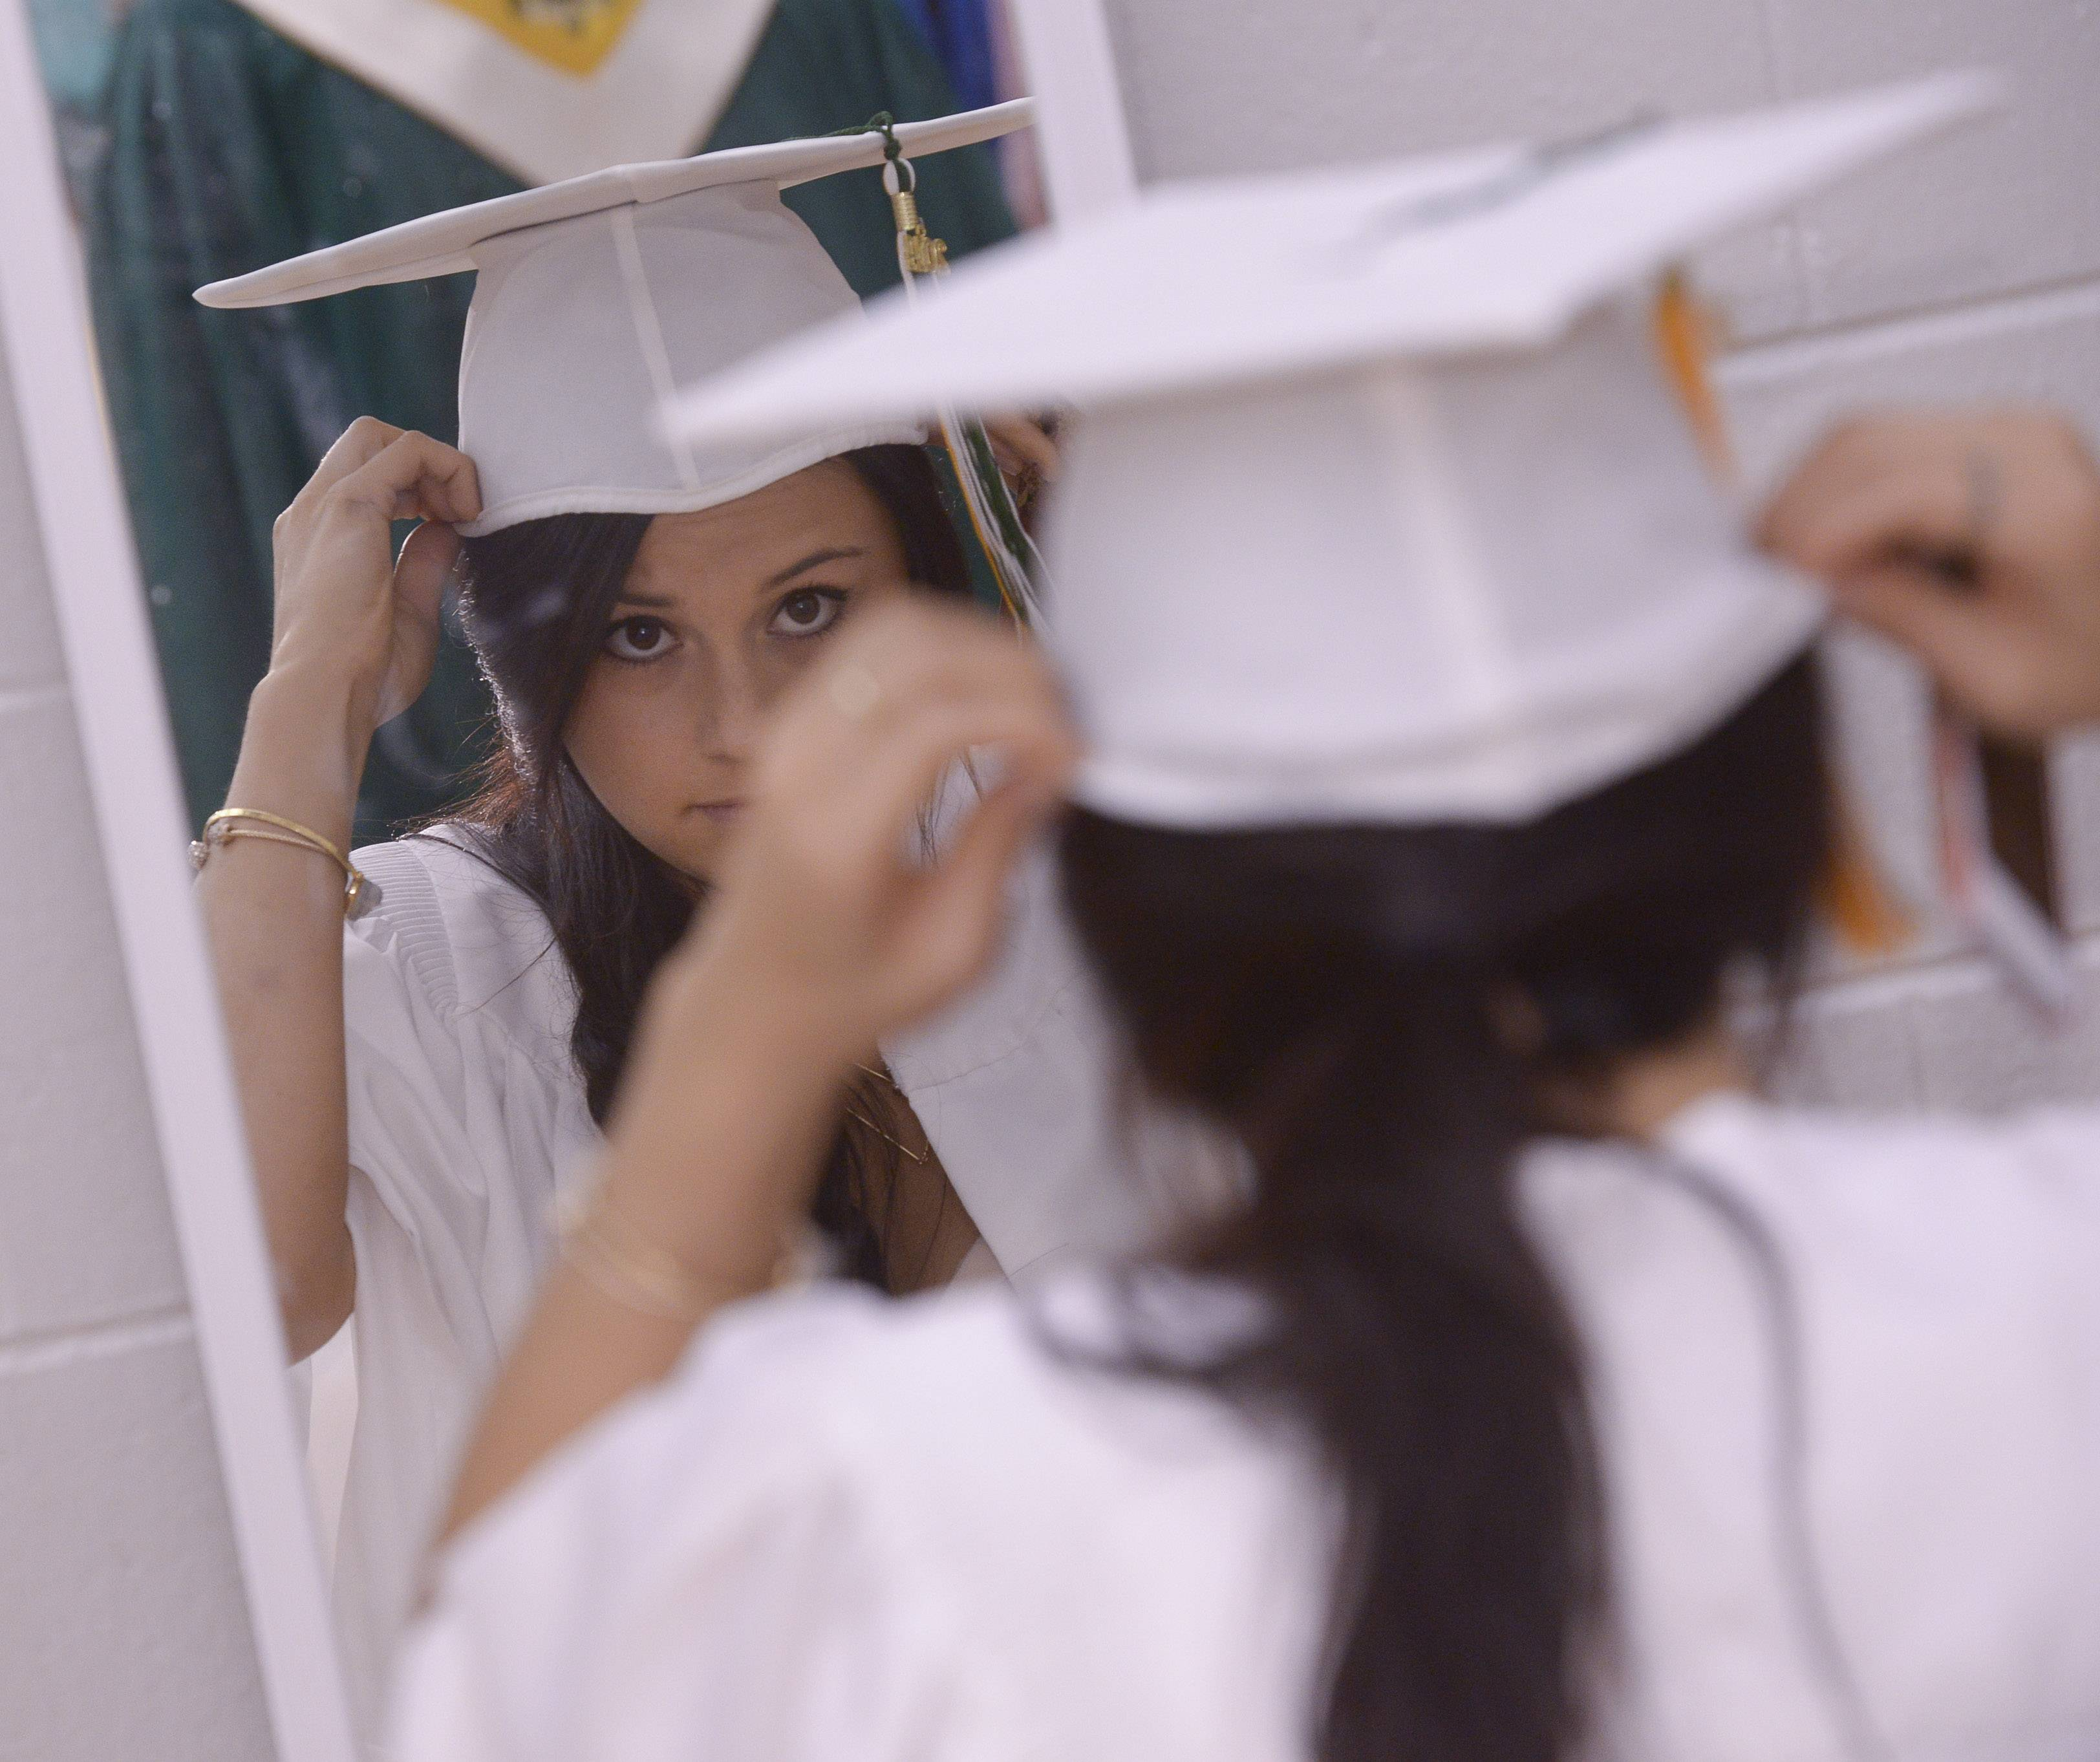 Lea Lokshin checks her cap in a mirror before the start of the Waubonsie Valley High School graduation on Sunday, May 25 at NIU in DeKalb.